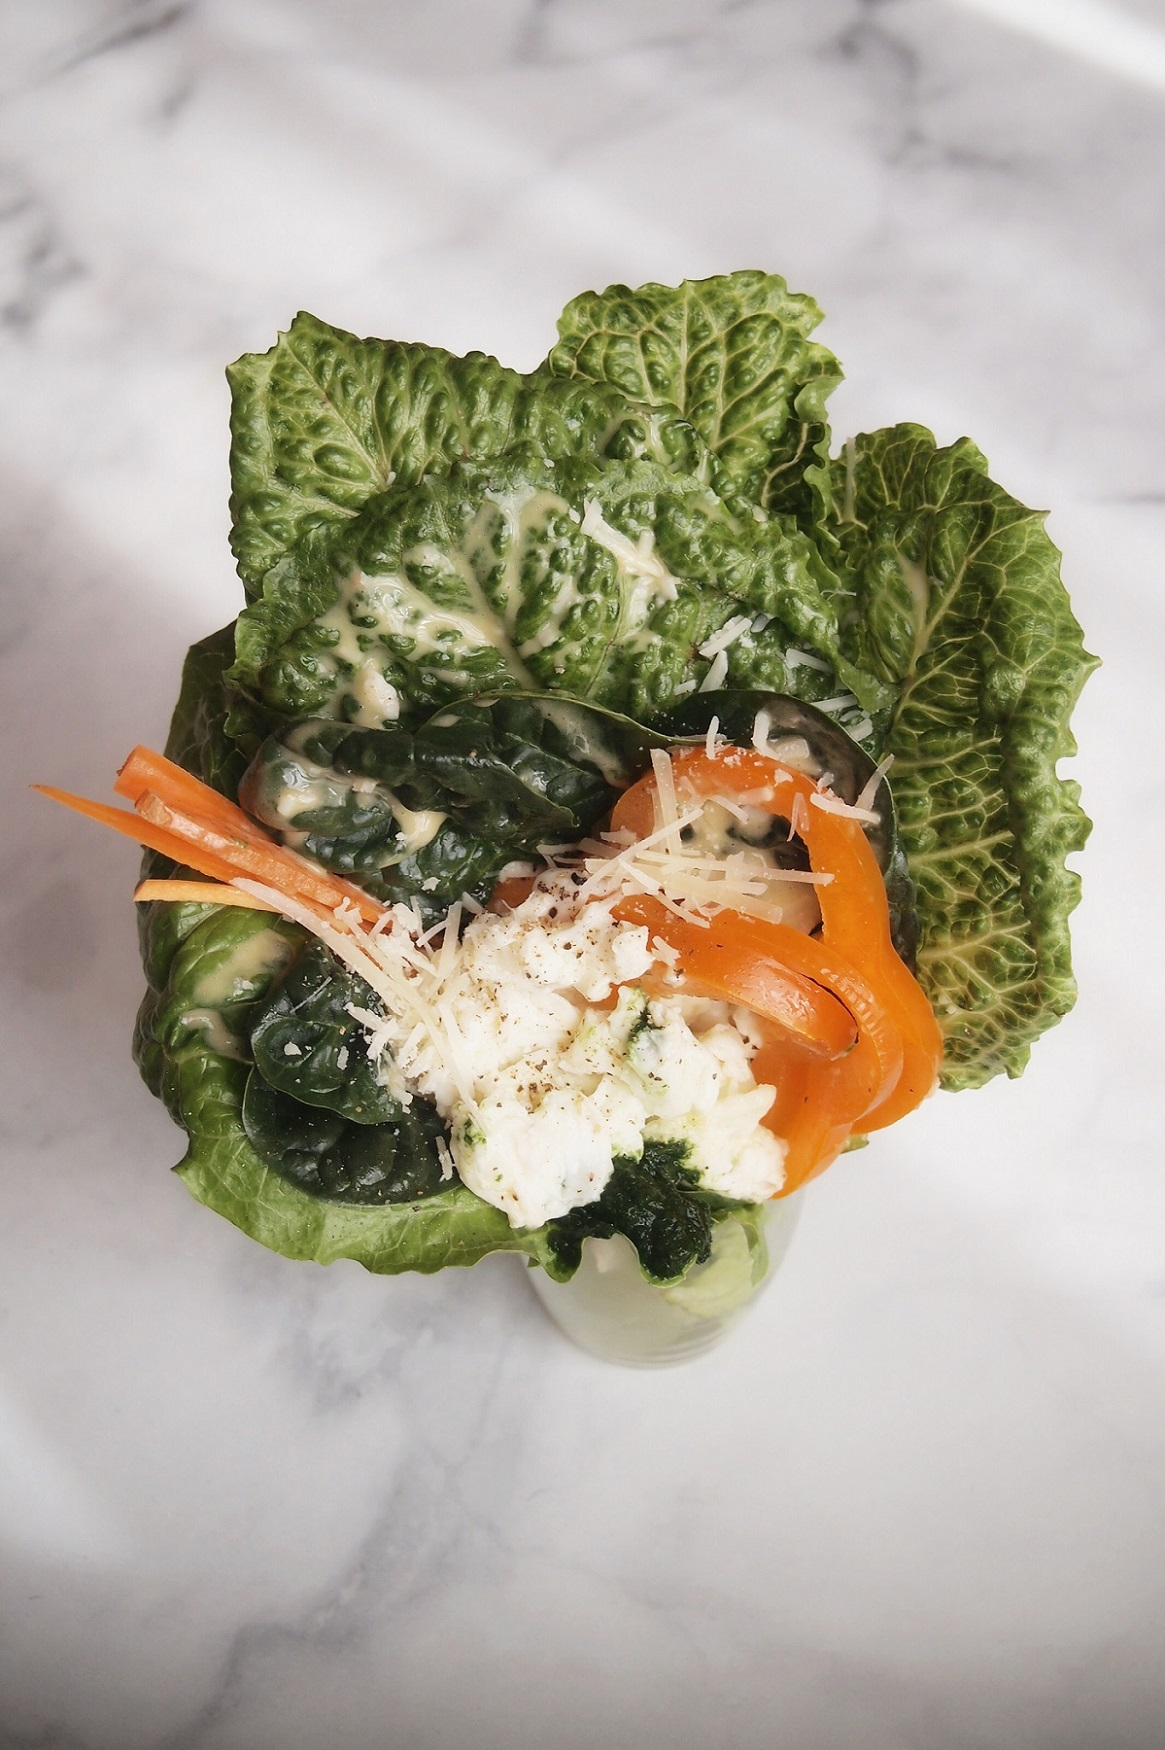 Caesar salad bouquet in a glass vase on top of marble setting.